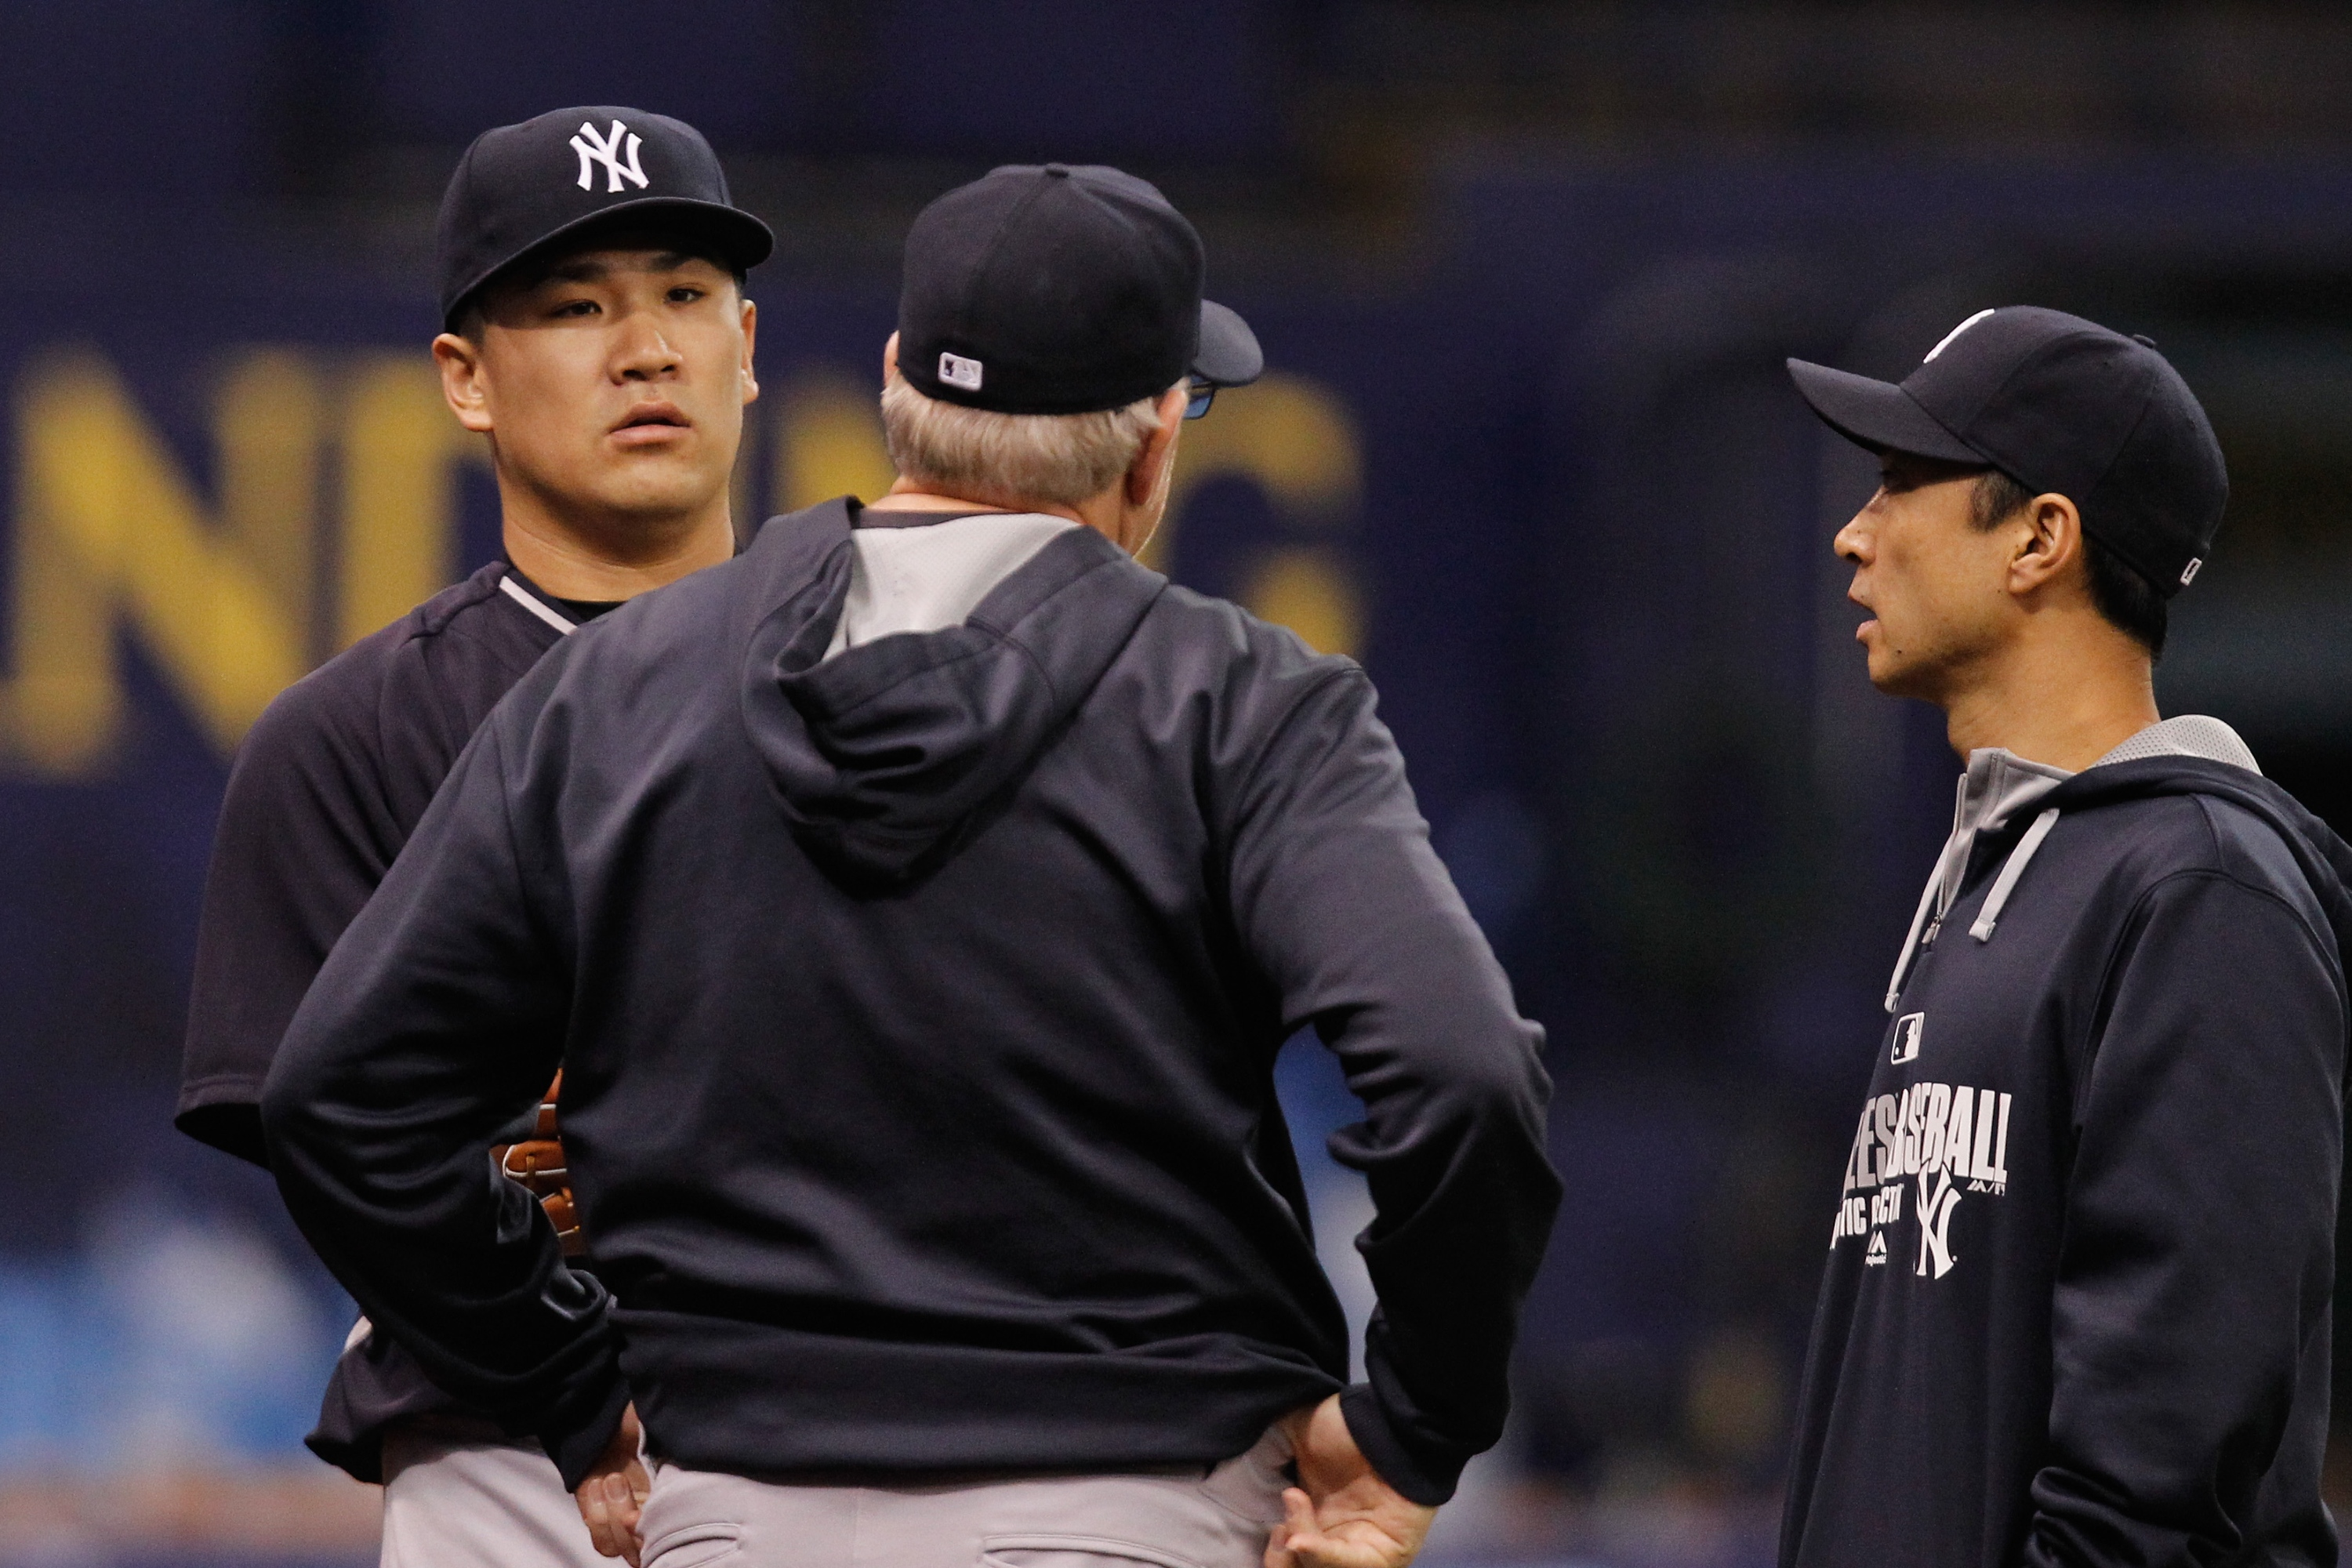 Masahiro Tanaka 'heading in right direction' after good bullpen…